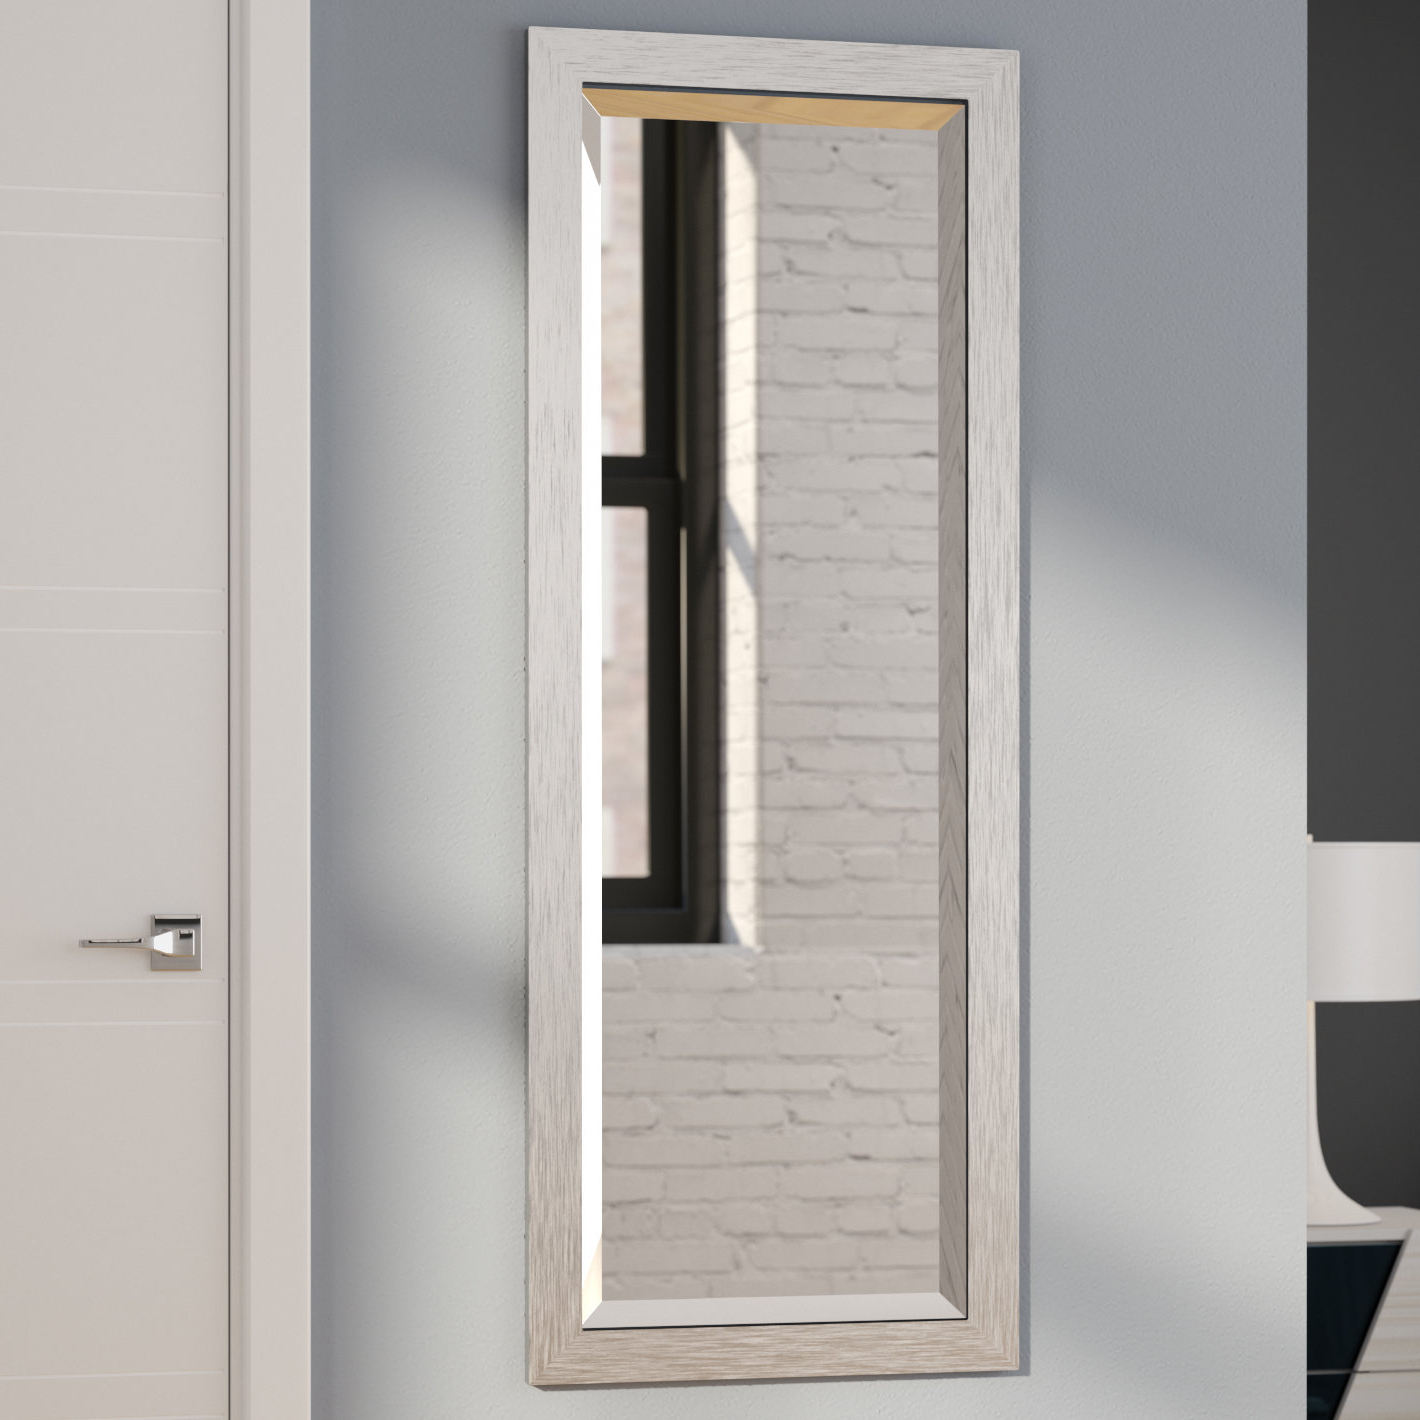 Modern & Contemporary Full Length Beveled Wall Mirror Throughout 2020 Floor Length Wall Mirrors (View 12 of 20)